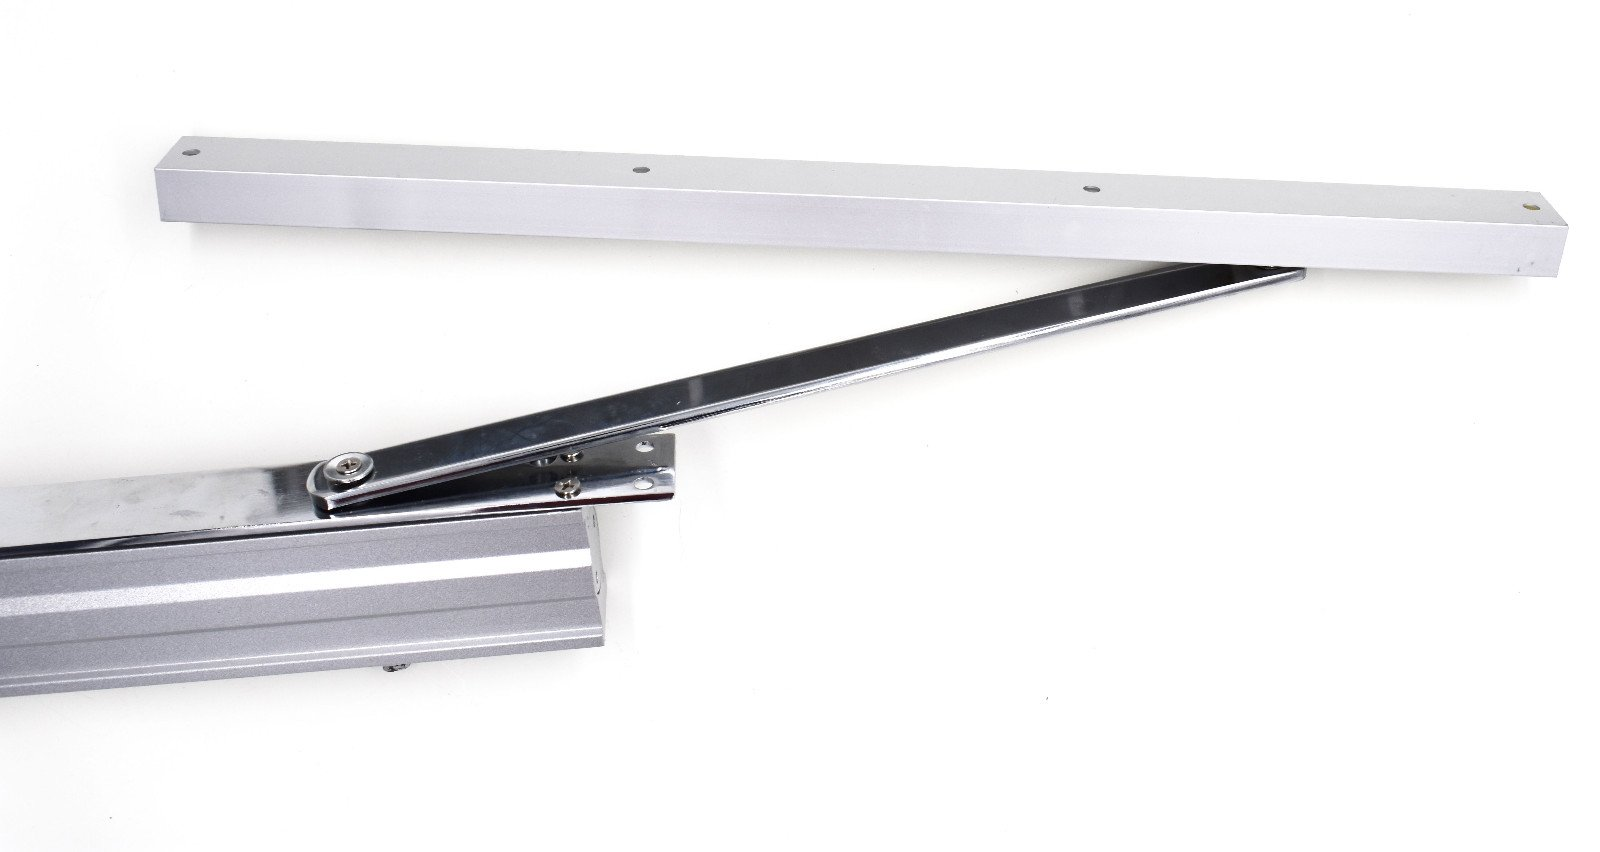 Kerui Furniture Hardware automatic door closer price door spring triangel double